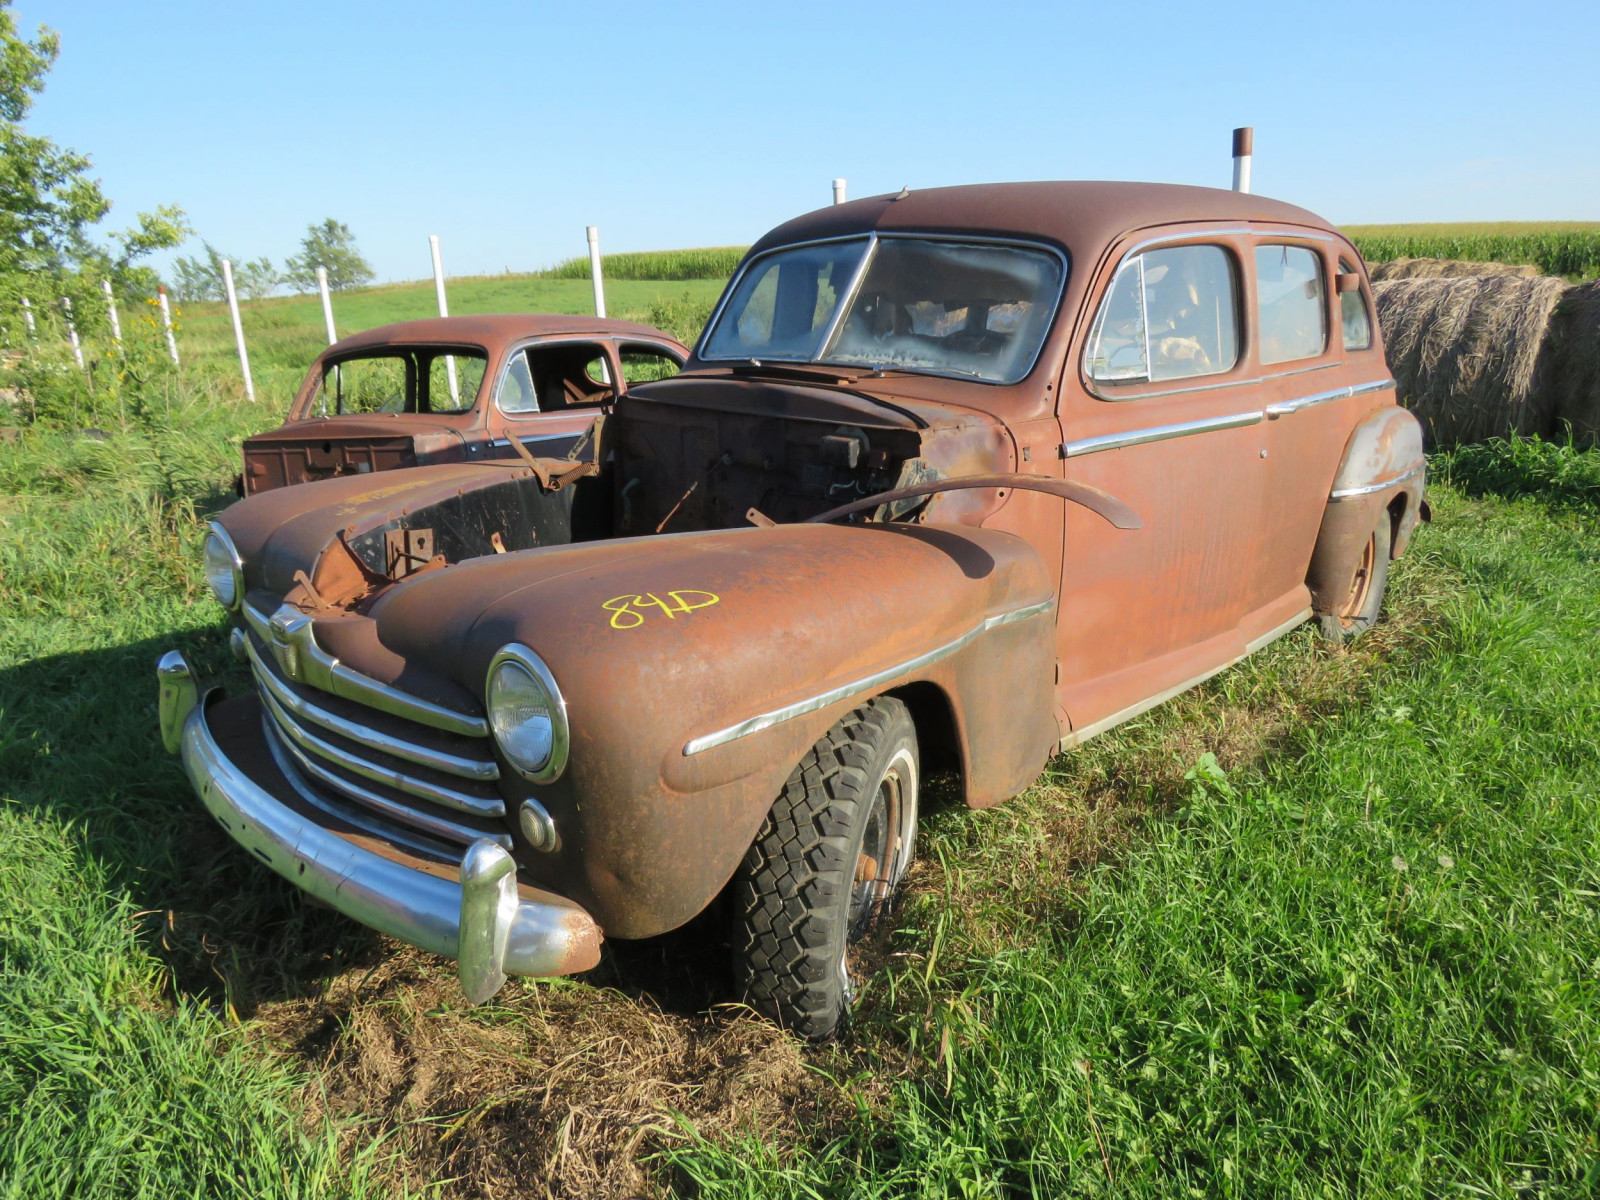 1947 Ford 4dr Sedan for Project or Parts - Image 1